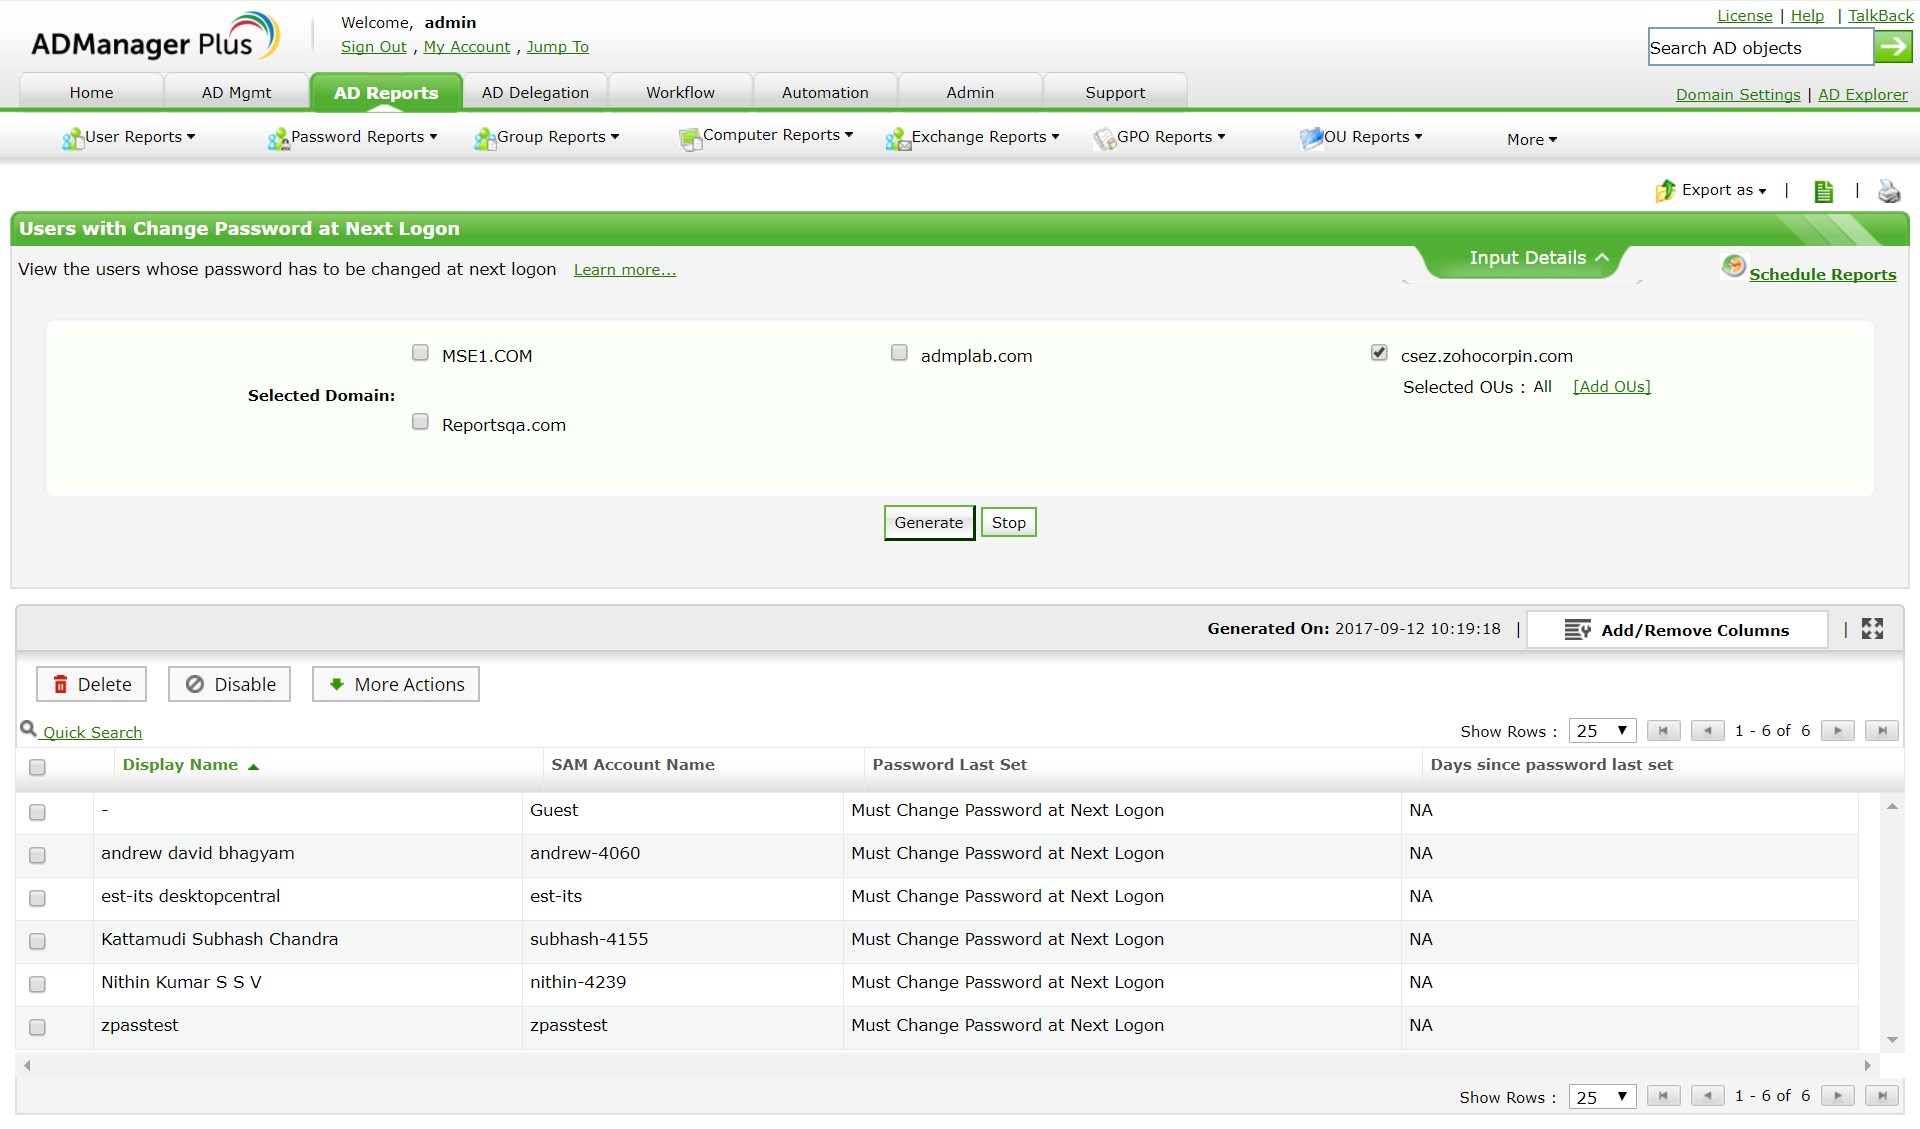 Build and export reports